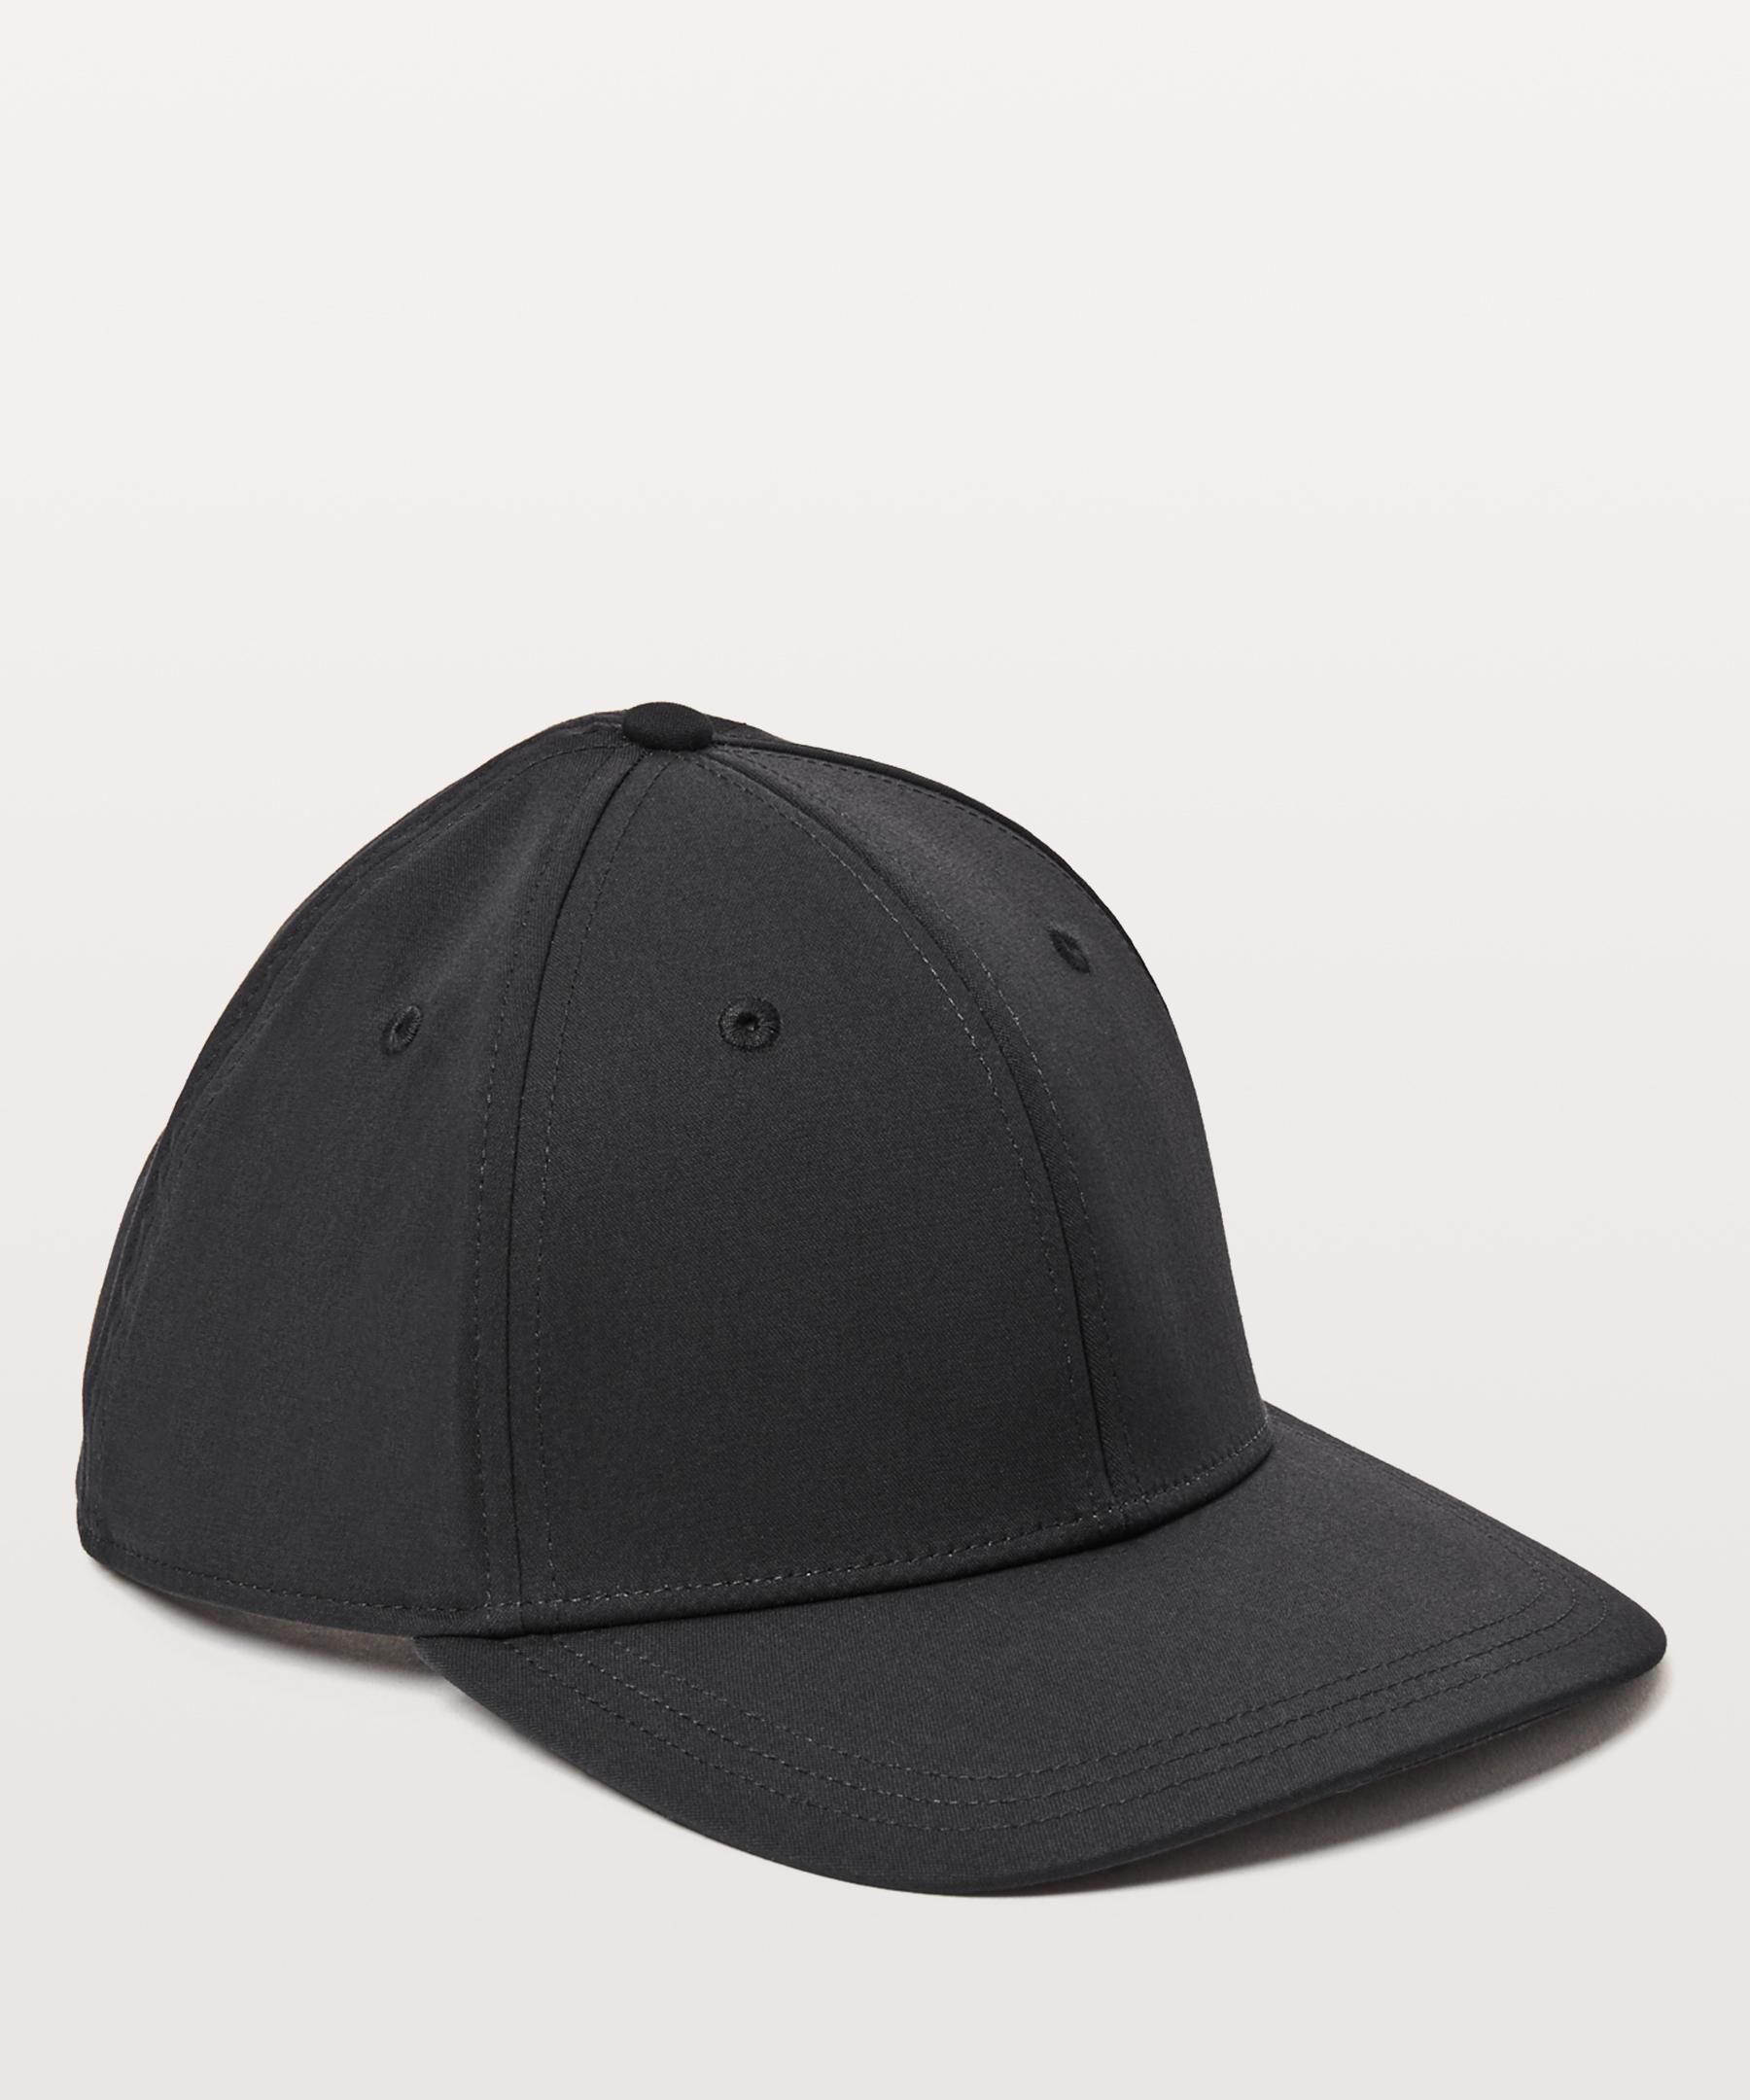 Lyst - Lululemon Athletica On The Fly Ball Cap in Black for Men 703f6ac87bc5